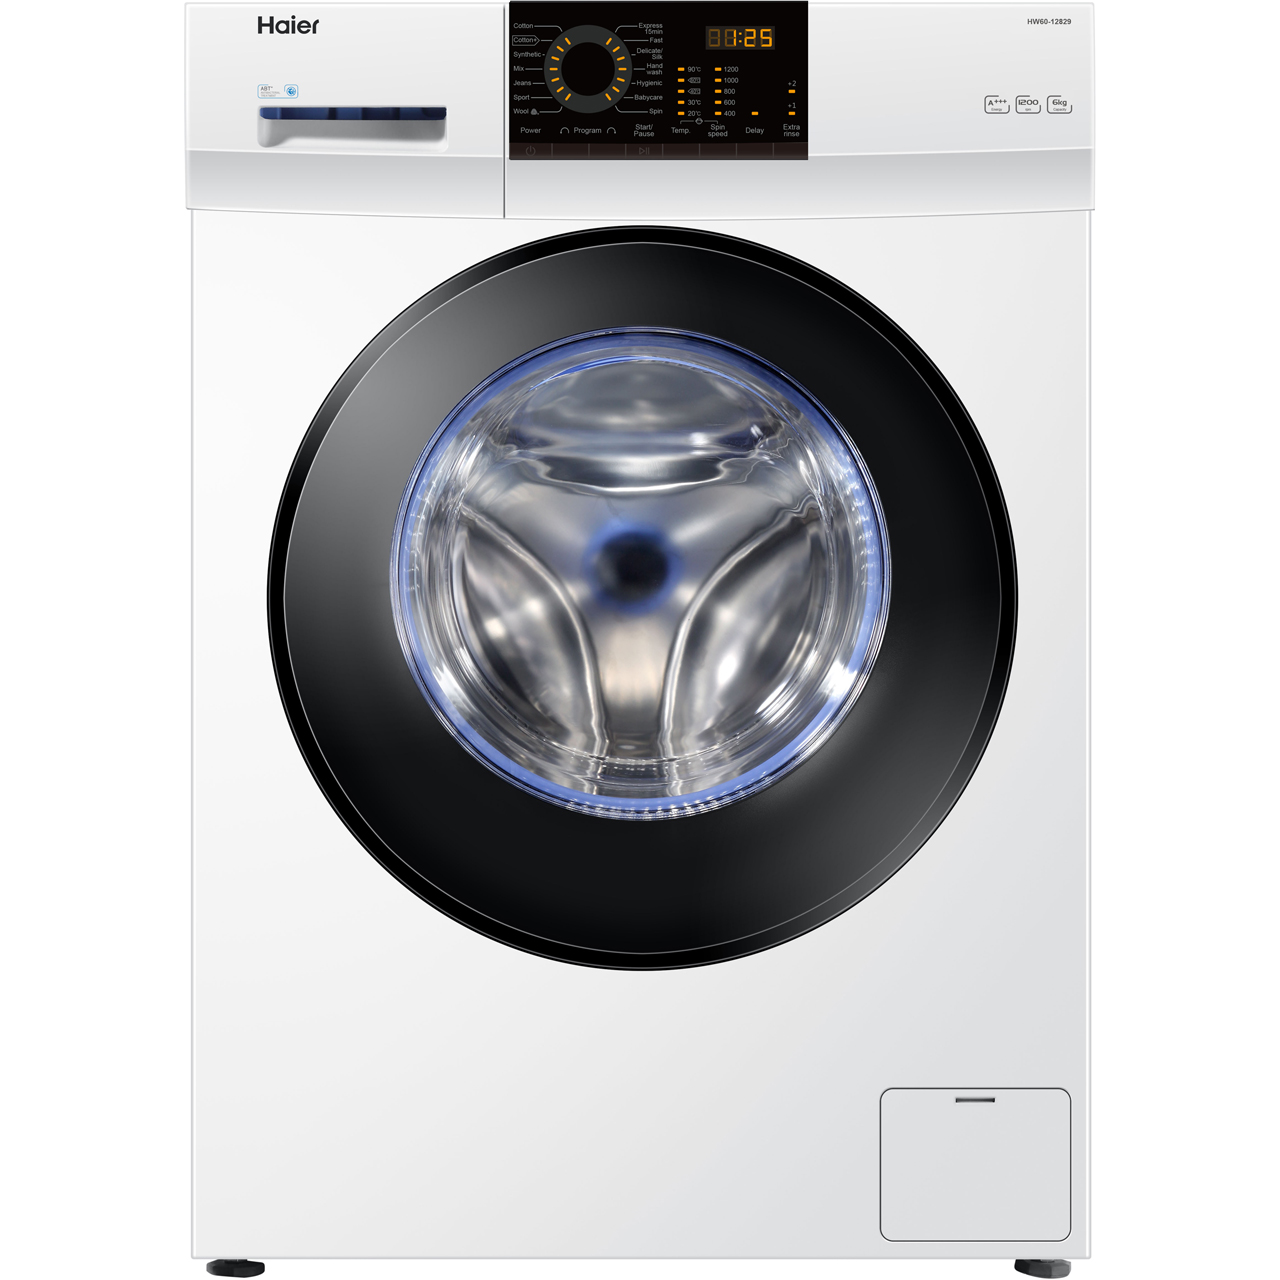 haier 6kg dryer. haier hw60-12829 6kg washing machine with 1200 rpm - white 6kg dryer